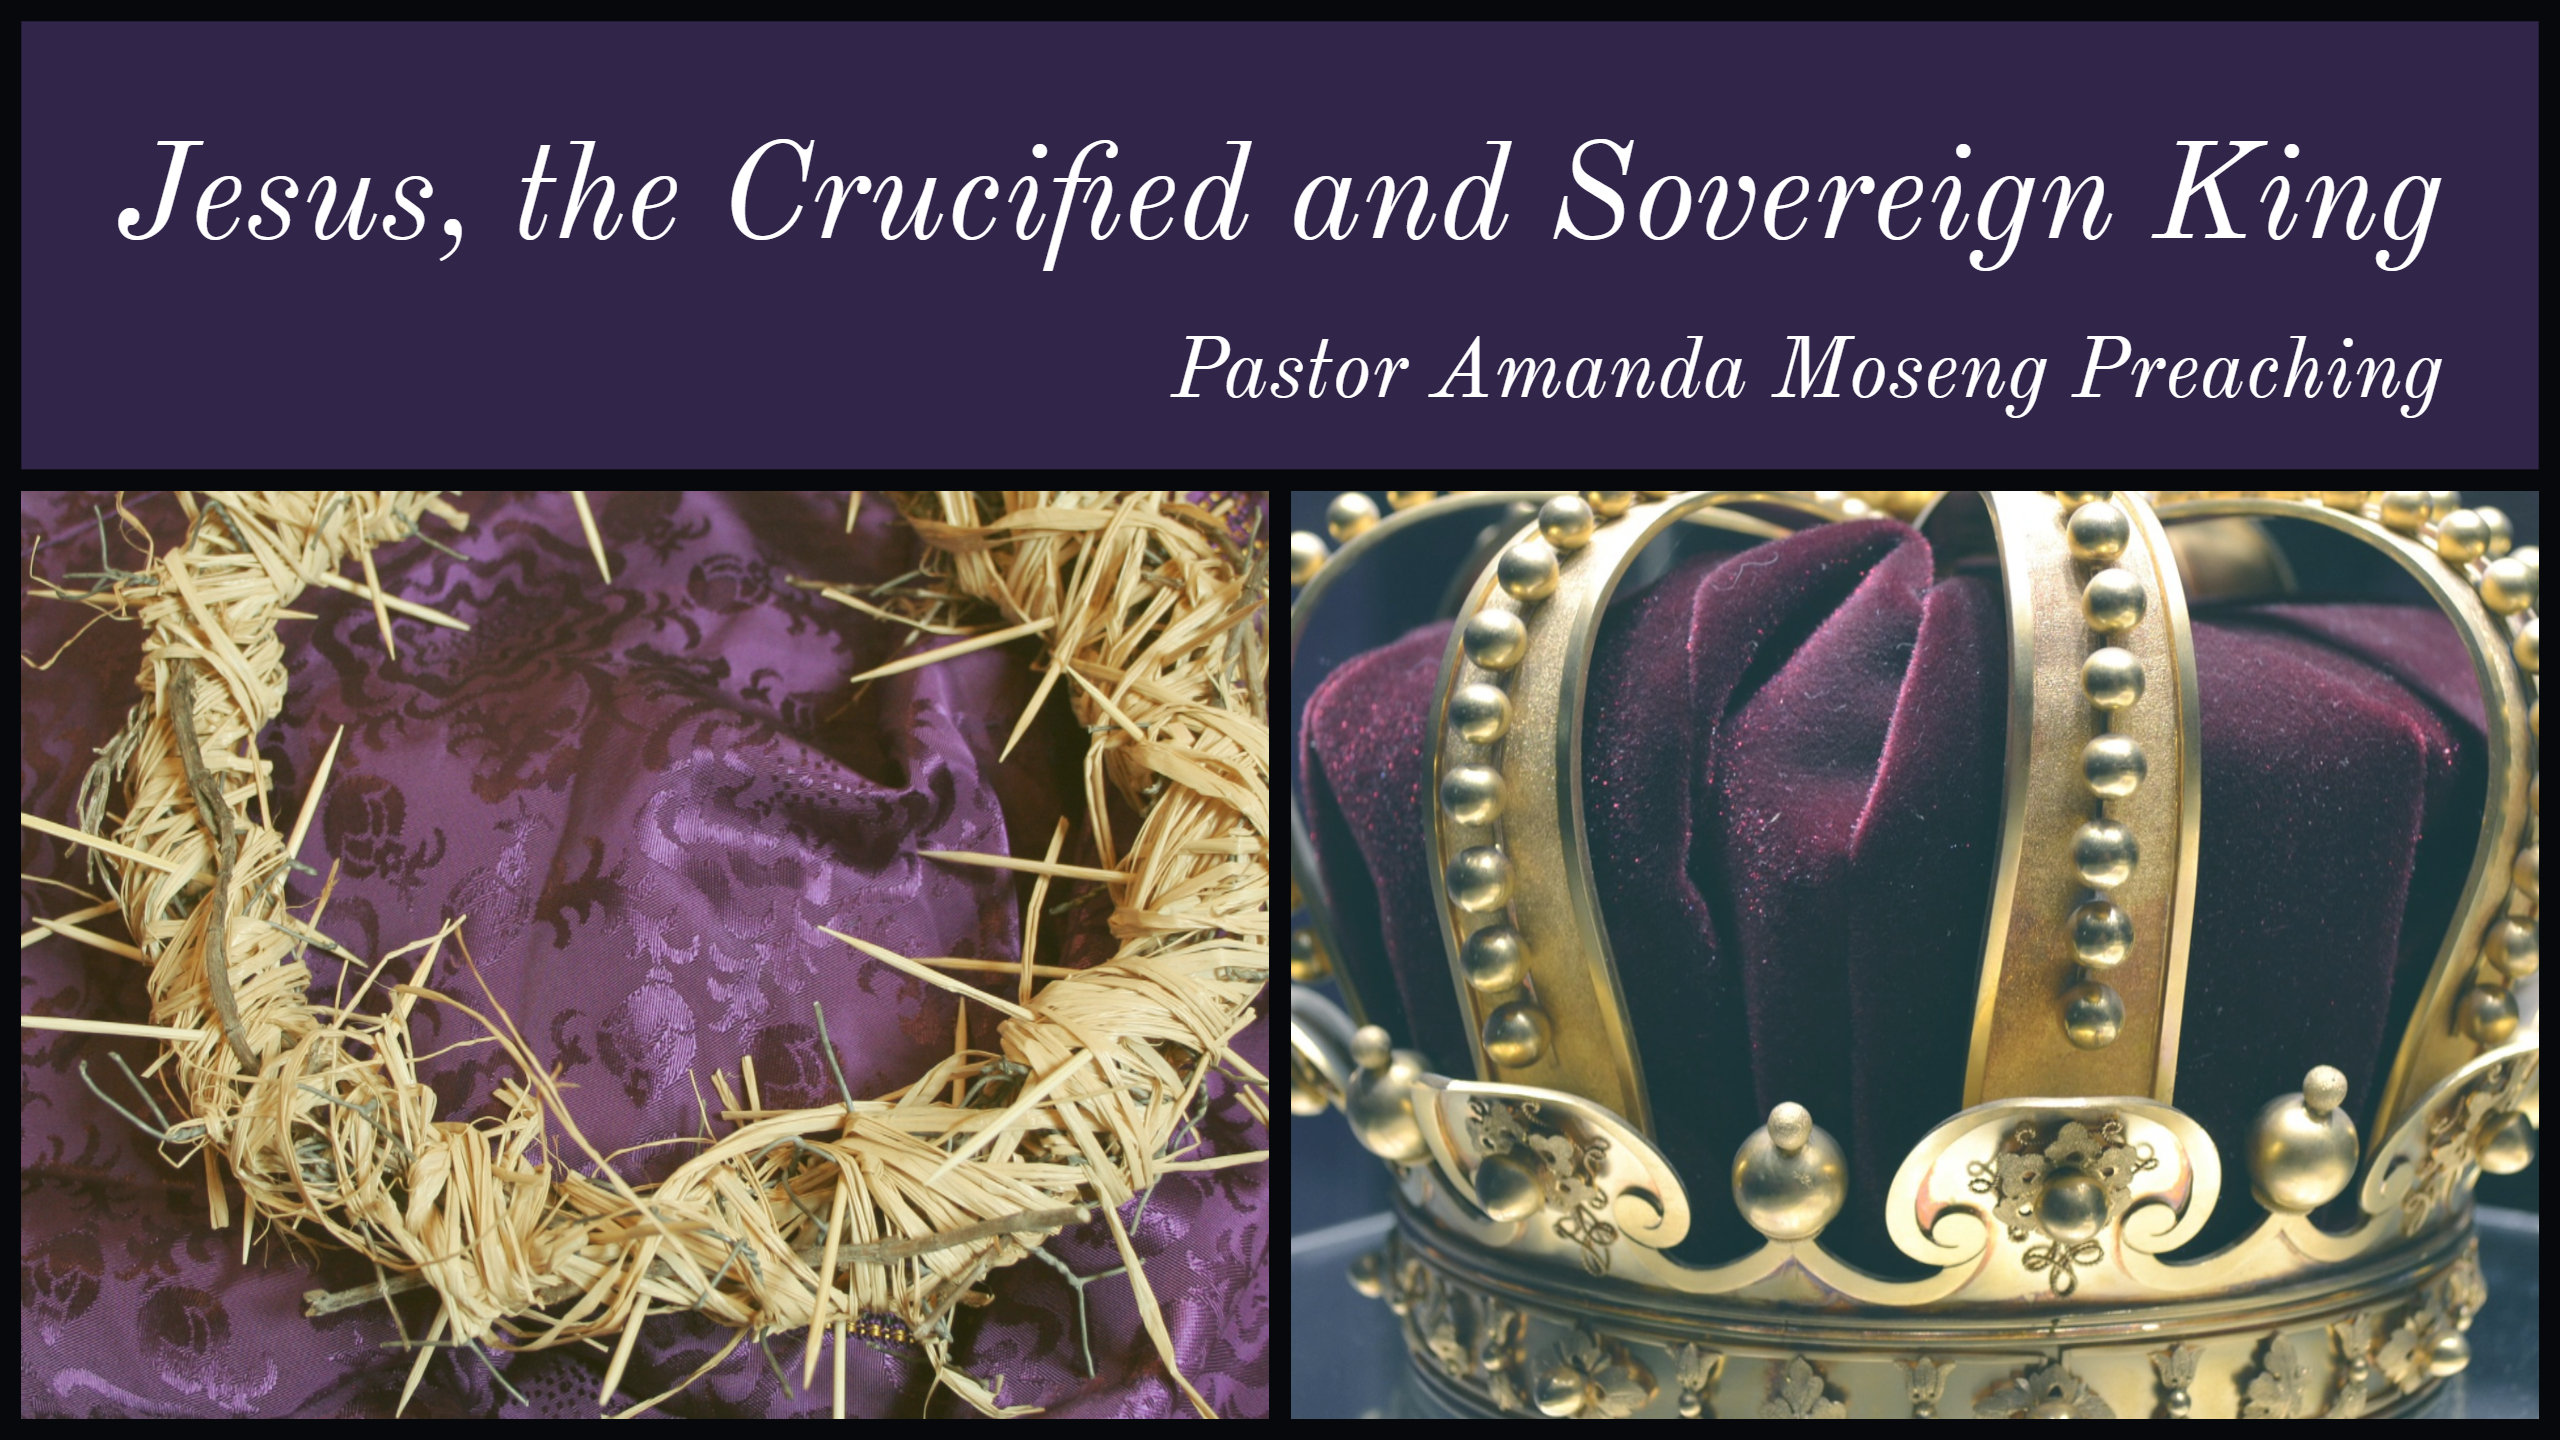 Jesus, the Crucified and Sovereign King